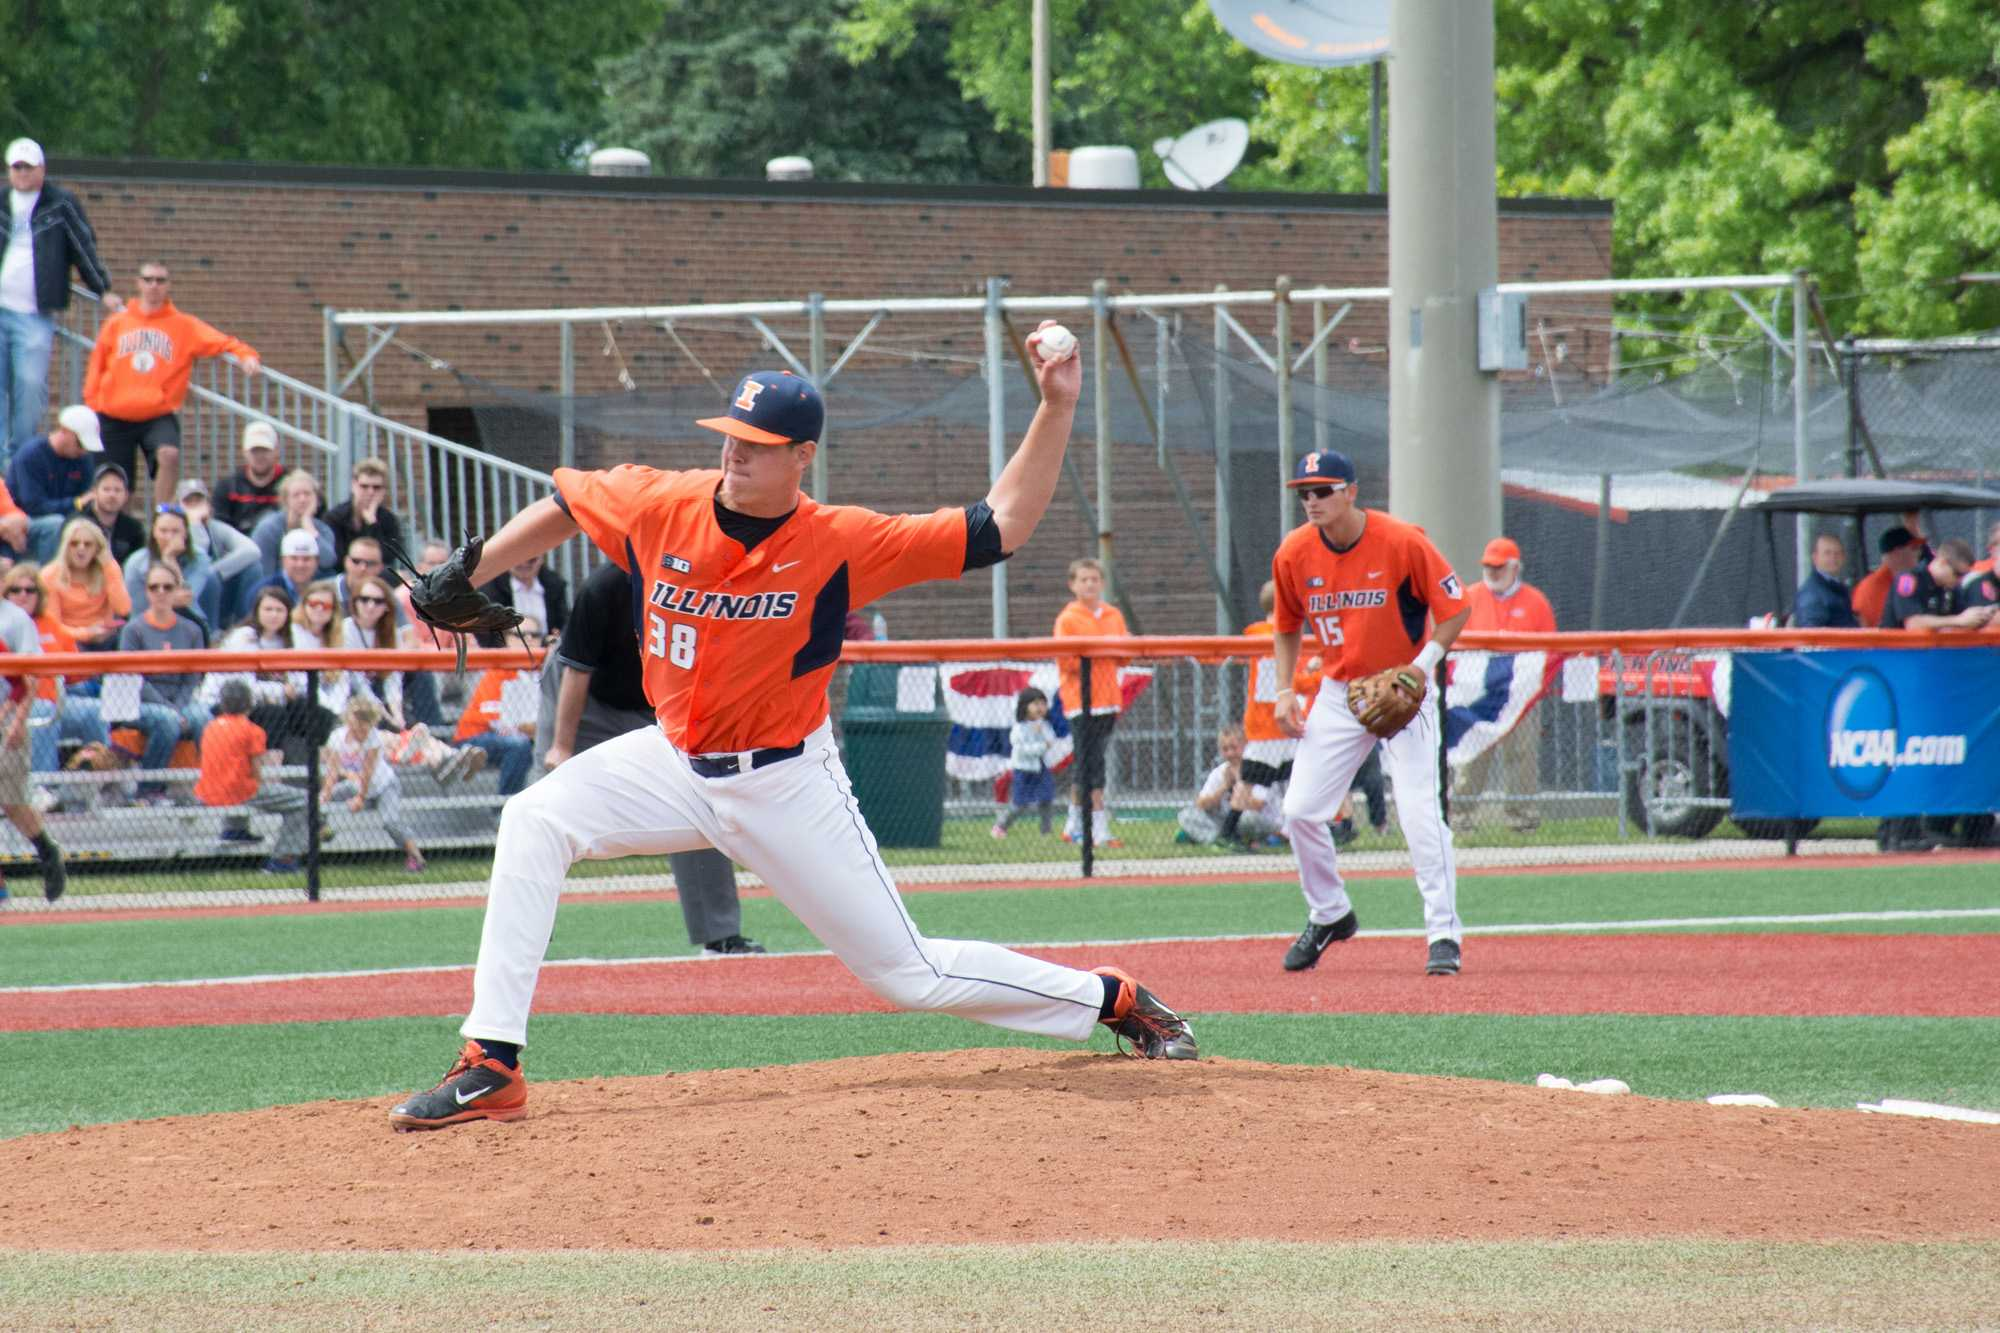 Illini pitcher J.D. Nielsen during Illinois' victory over Wright State at Illinois field on June 1.